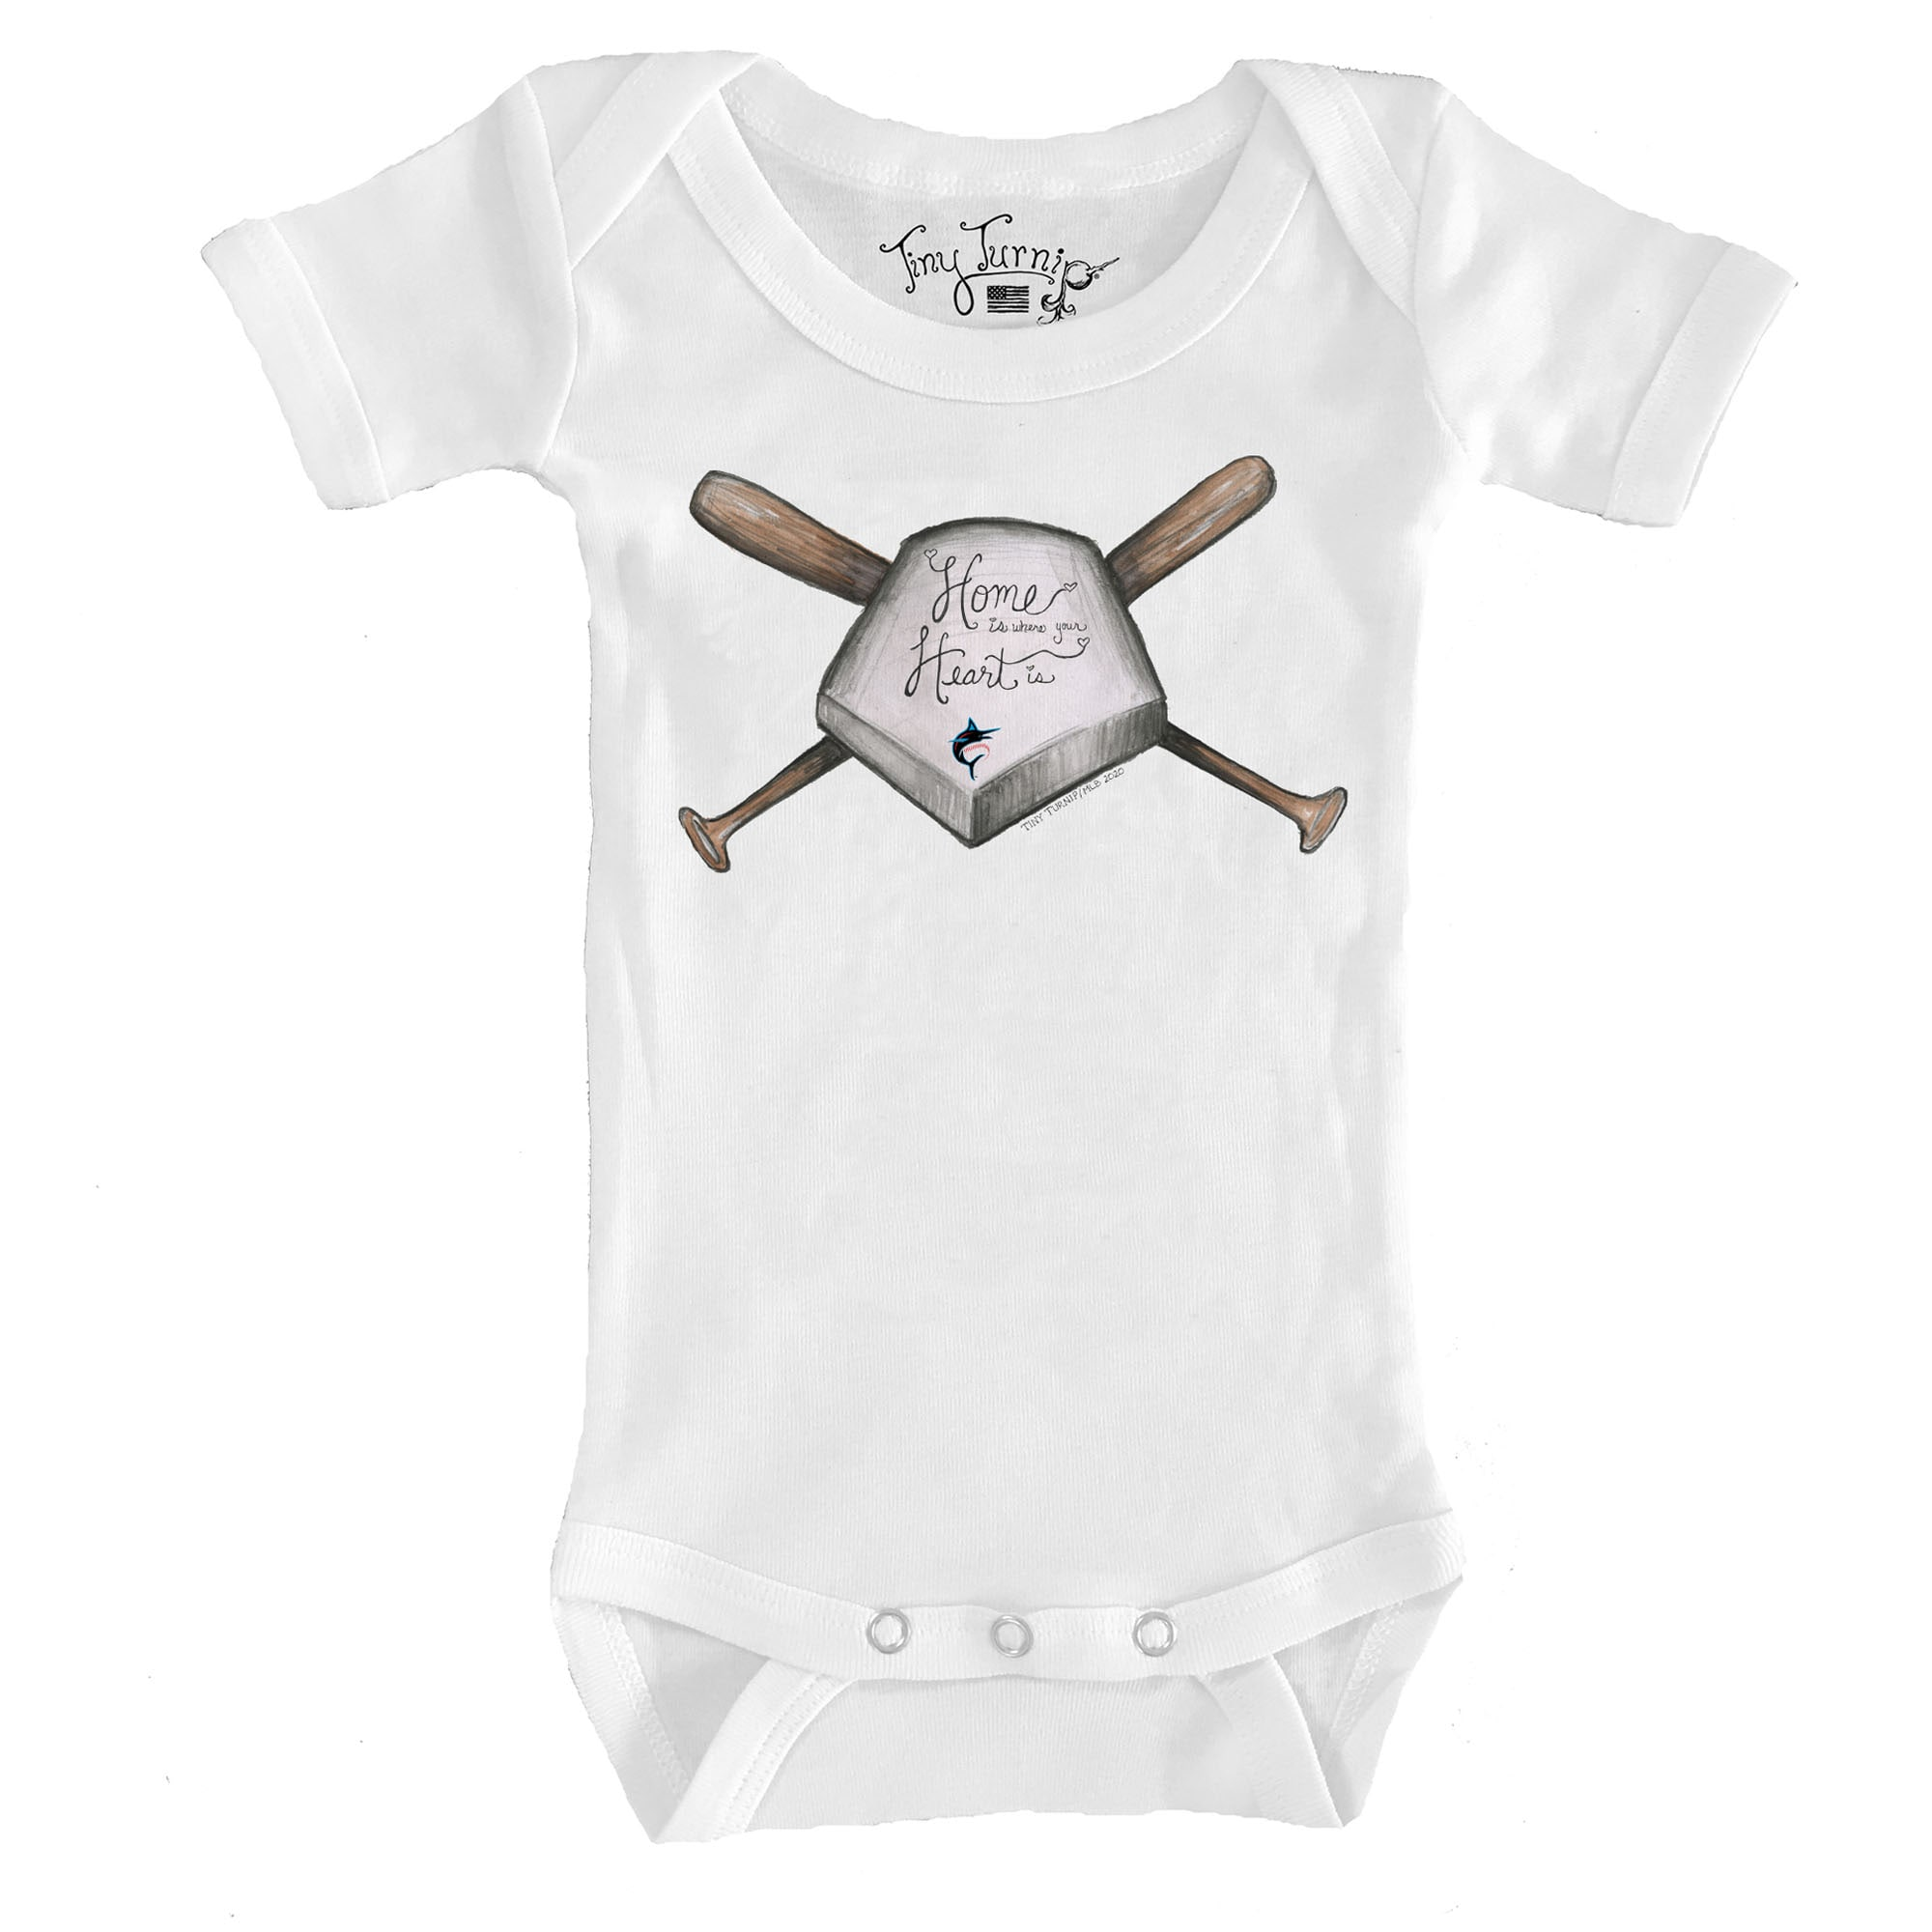 Miami Marlins Tiny Turnip Infant Home Is Where Your Heart Is Bodysuit - White